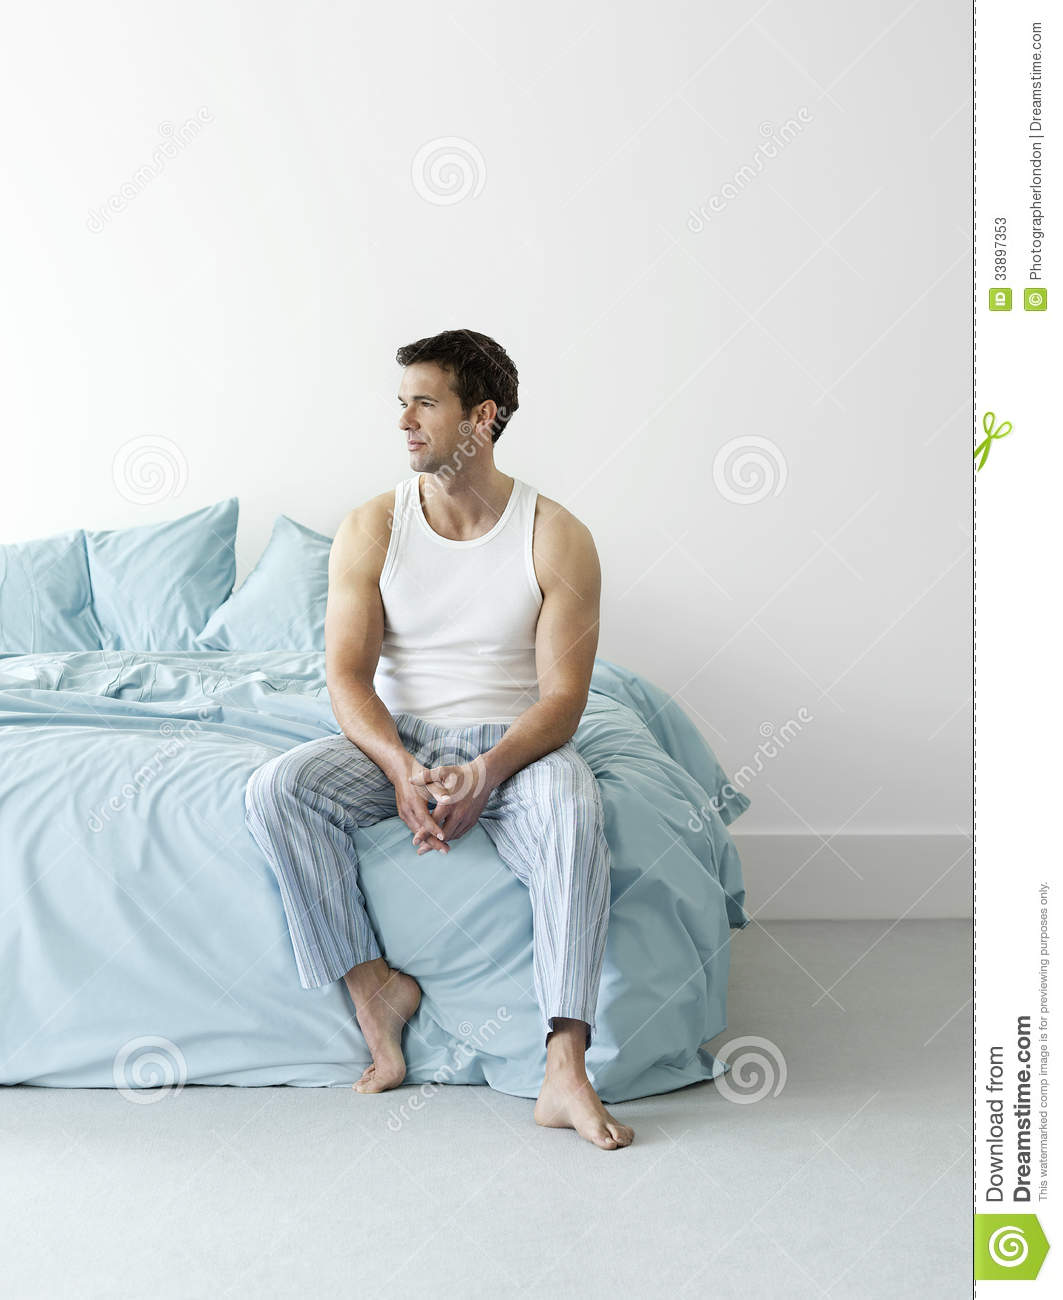 Thoughtful man in nightwear sitting in bed stock photos image 33897353 - Man bedroom photo ...